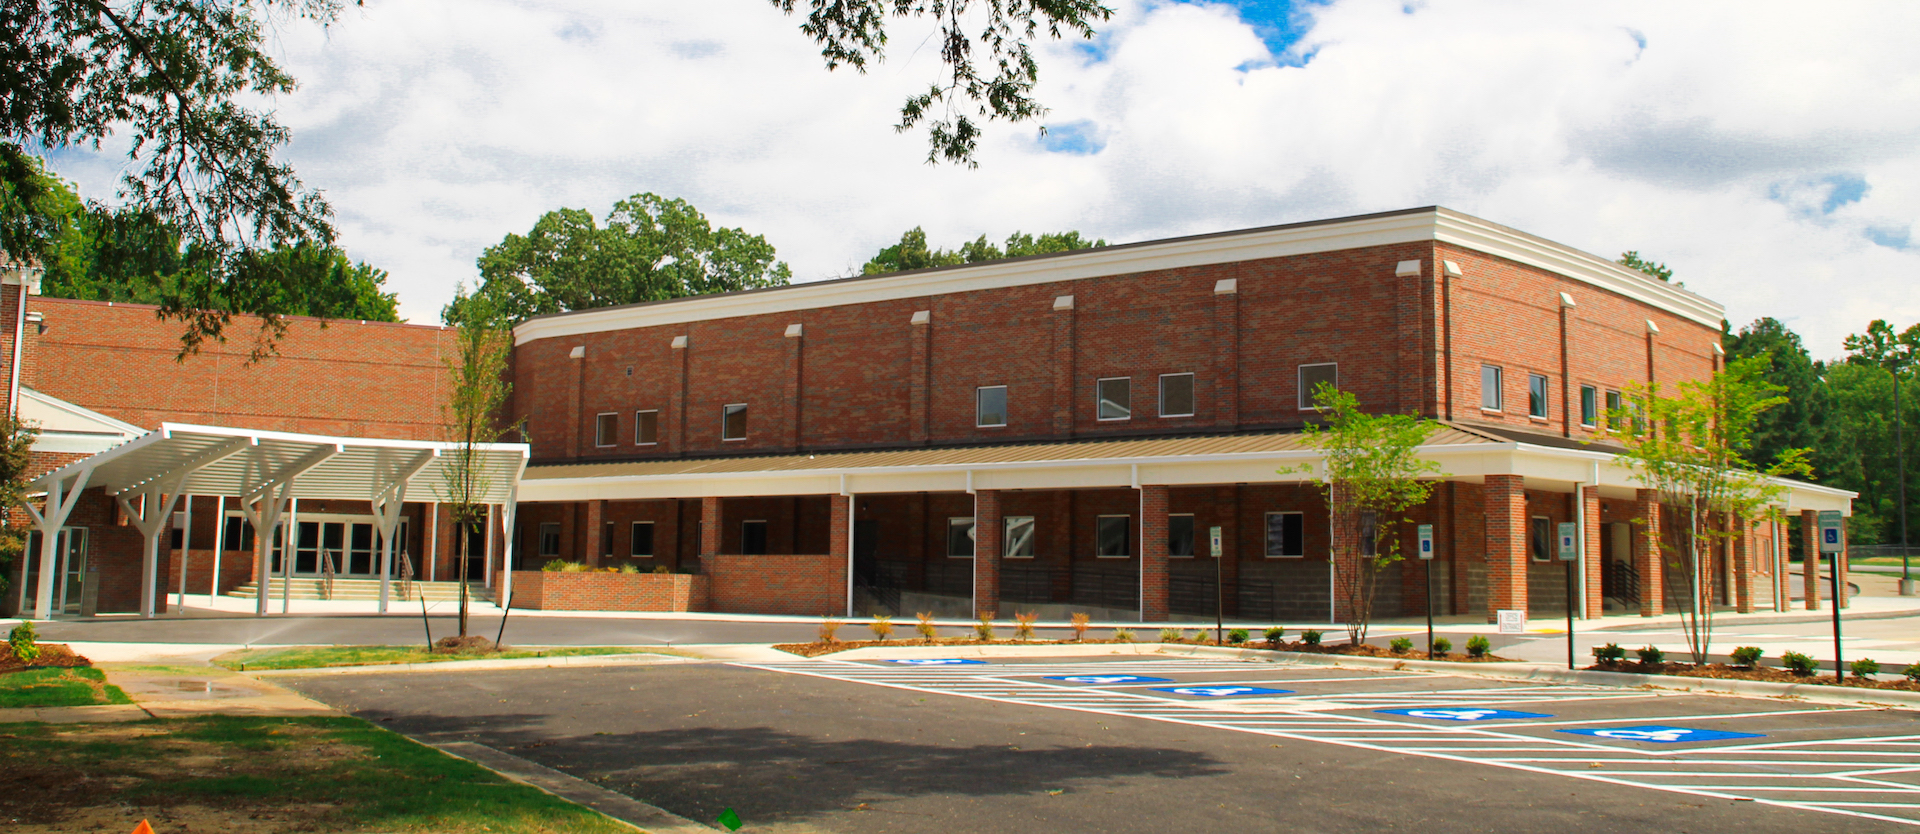 Downtown Church of Christ - Children's Building | Searcy, AR